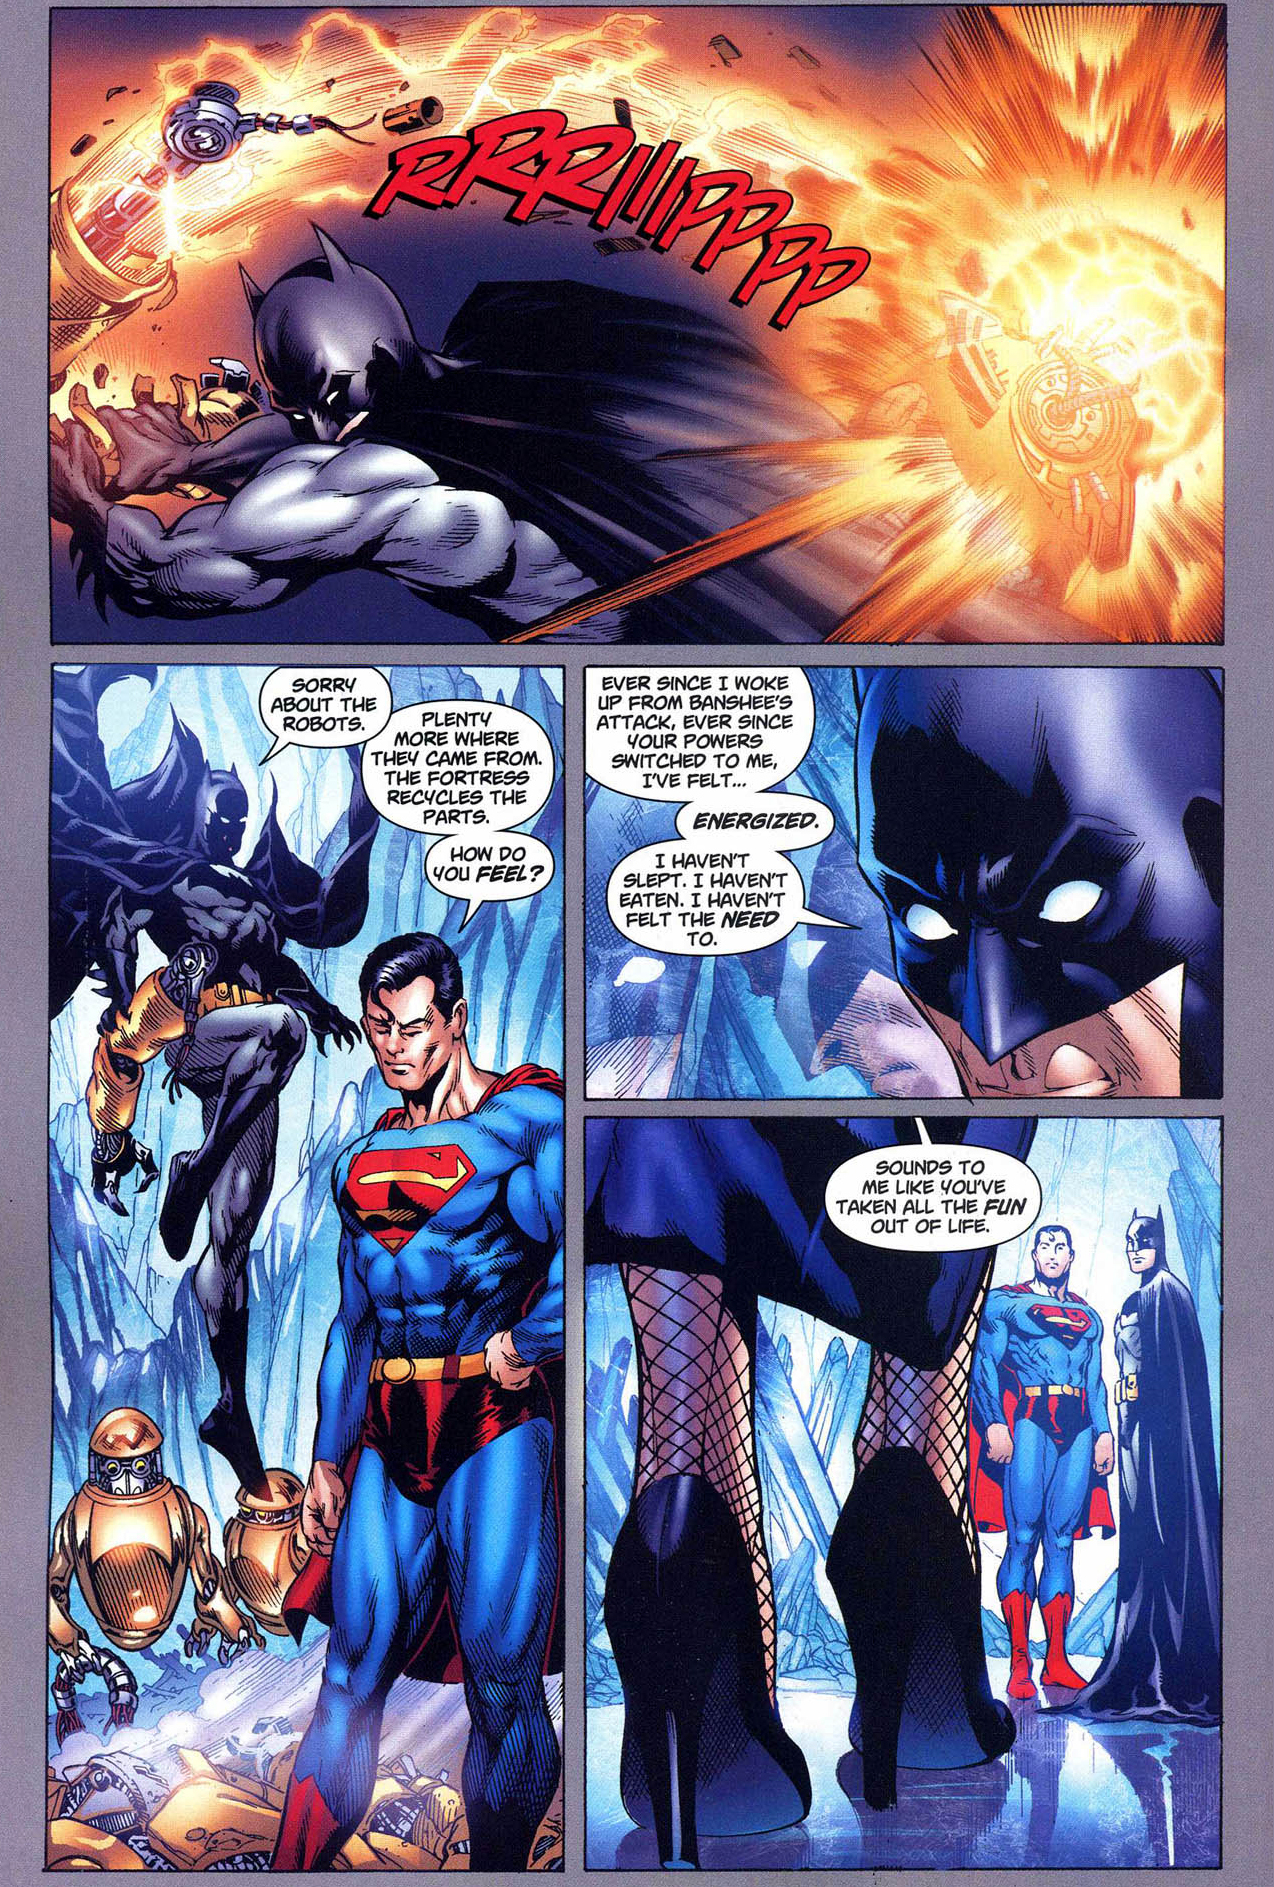 superman trains batman with his powers